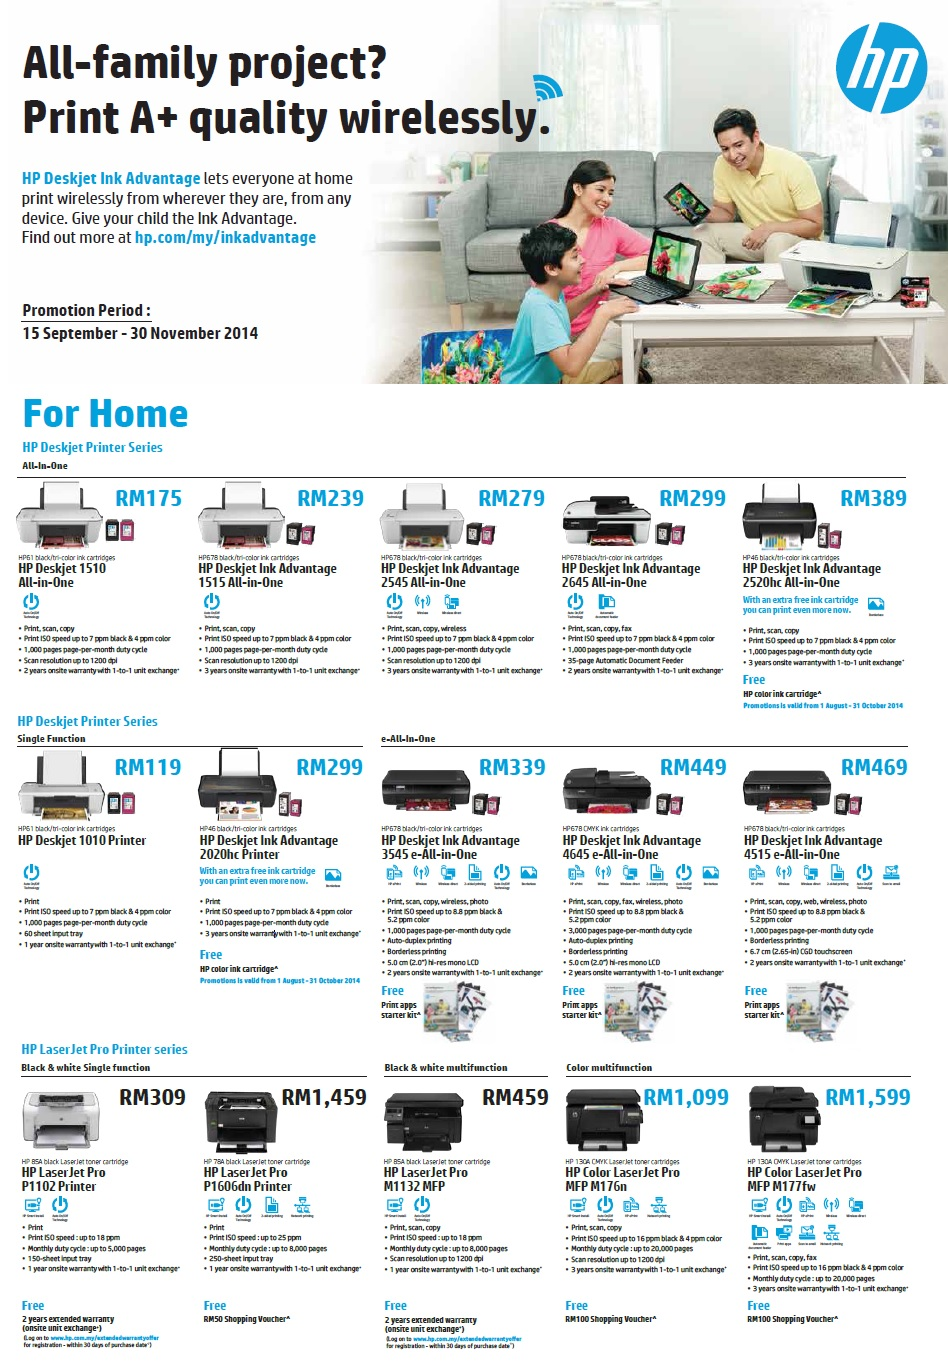 HP Printer for Home